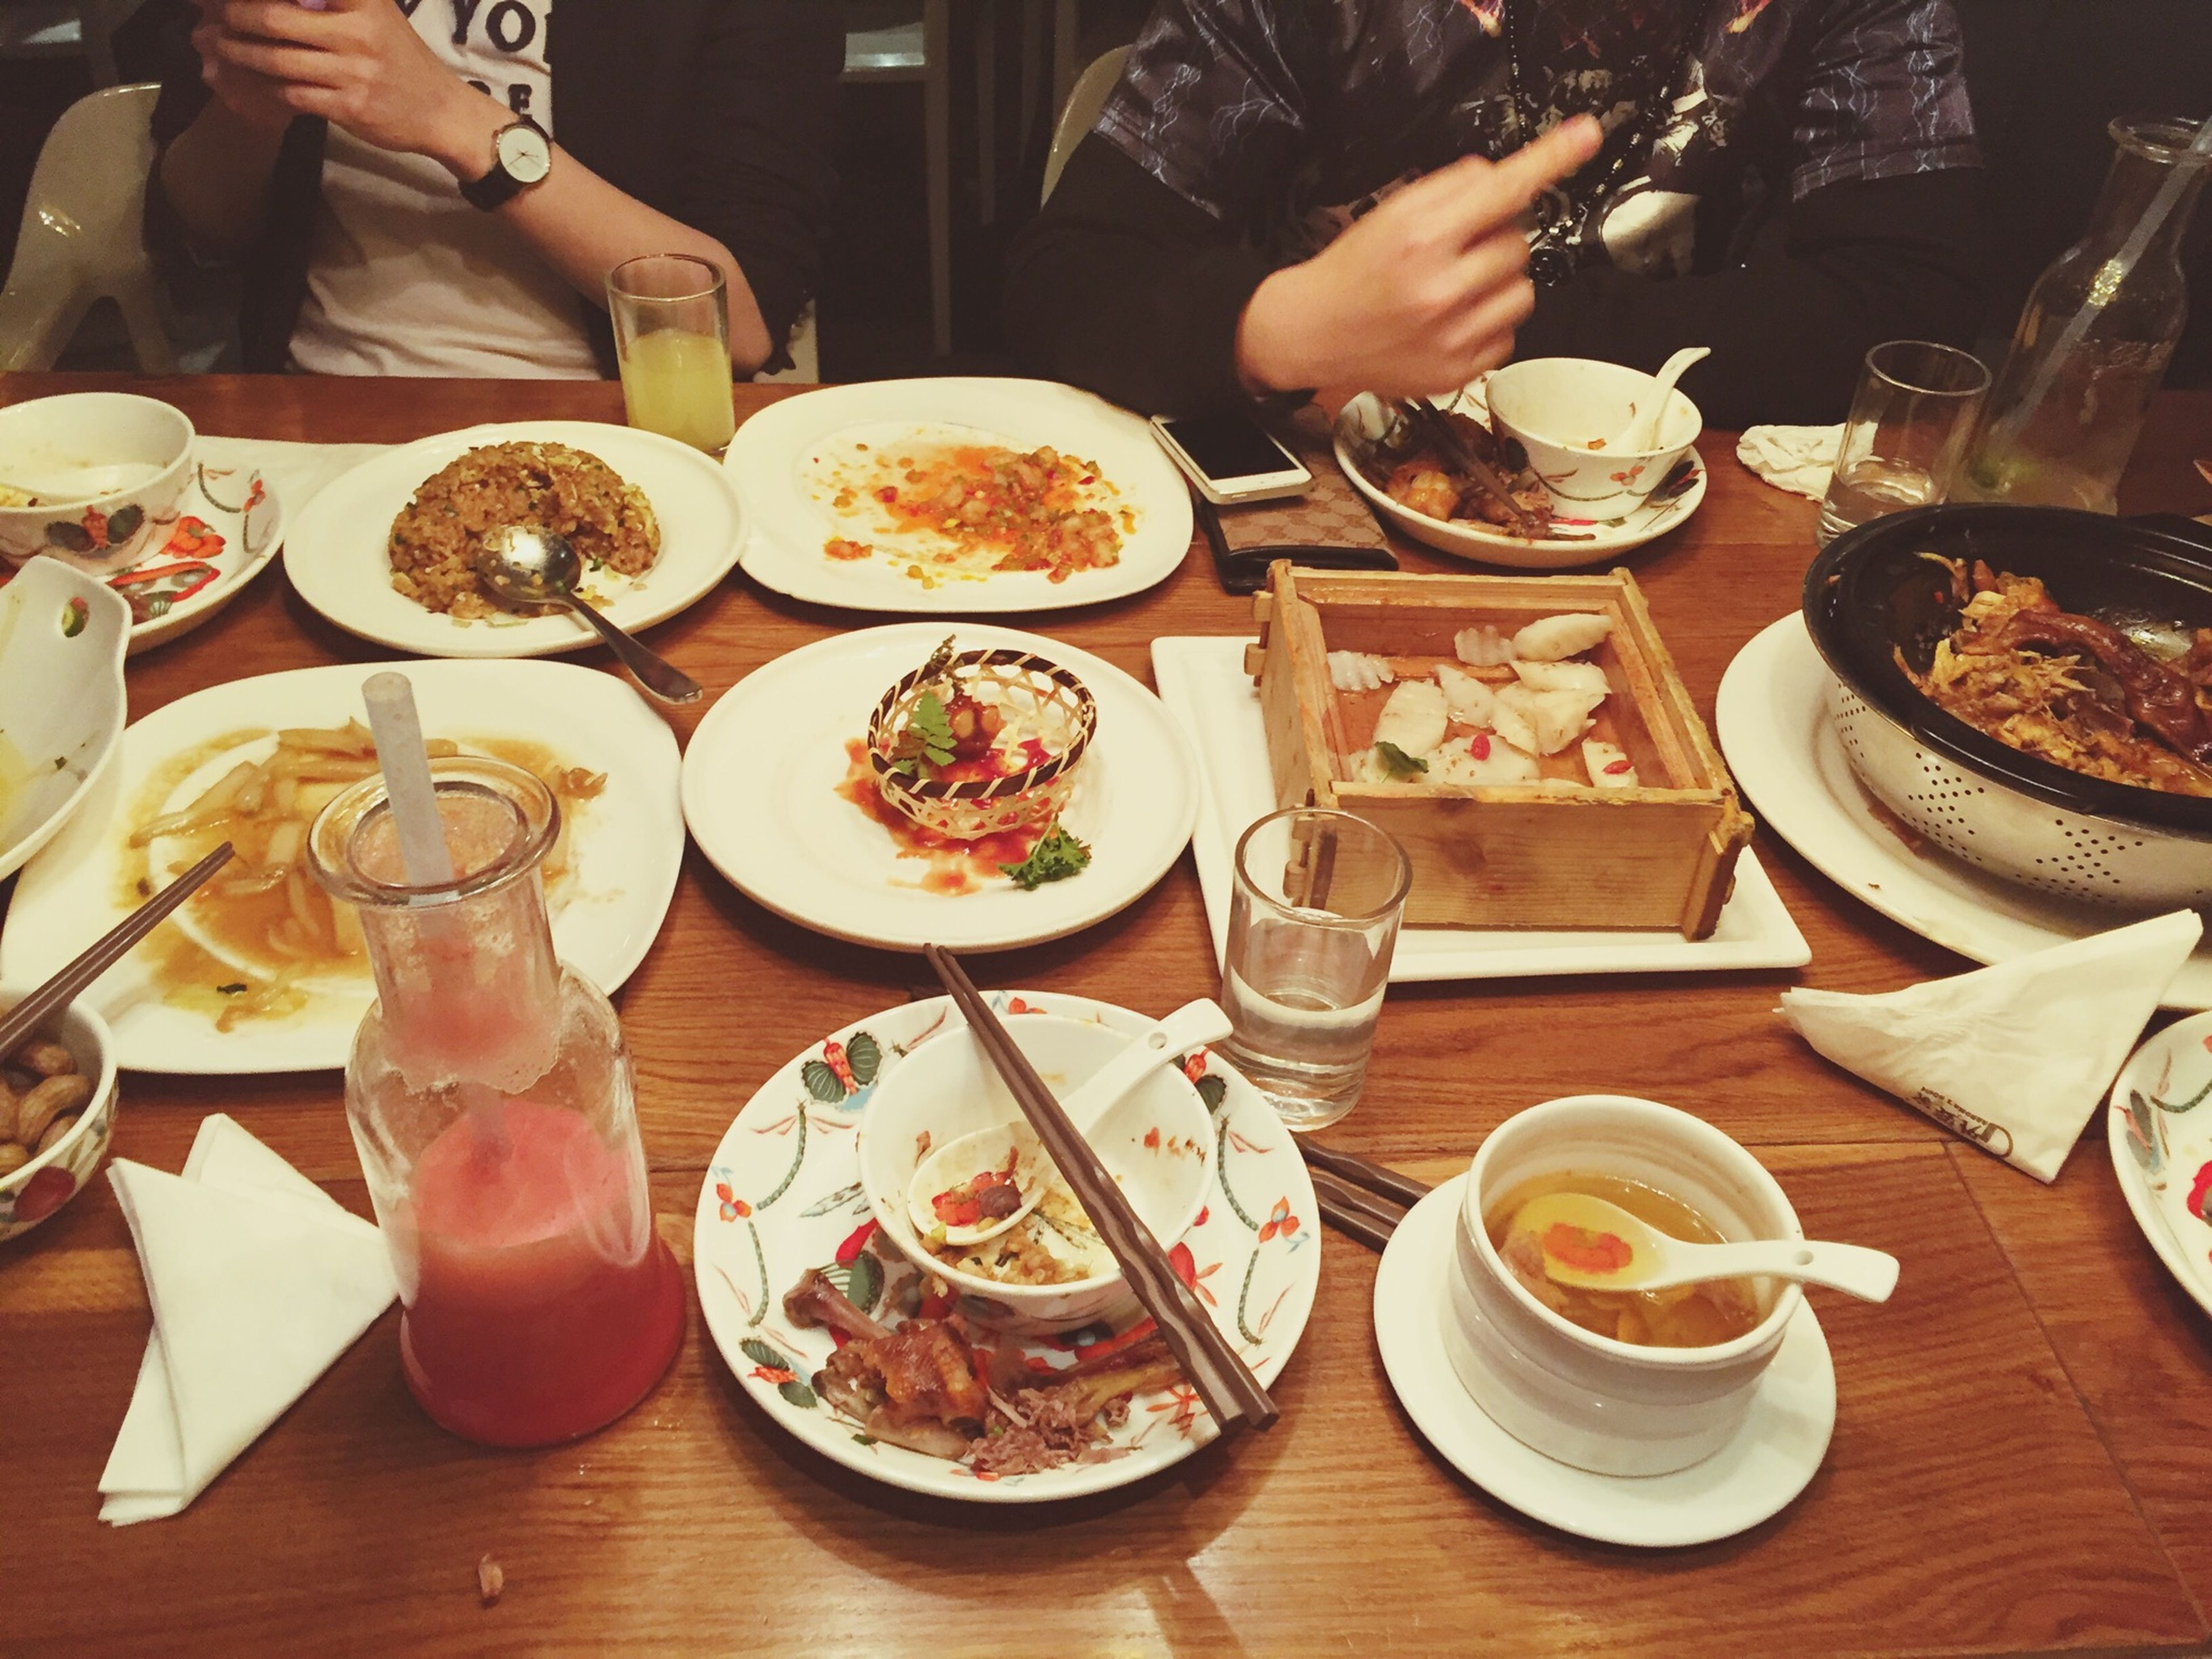 food and drink, food, freshness, table, indoors, ready-to-eat, healthy eating, plate, person, drink, meal, bowl, restaurant, meat, serving size, high angle view, incidental people, lifestyles